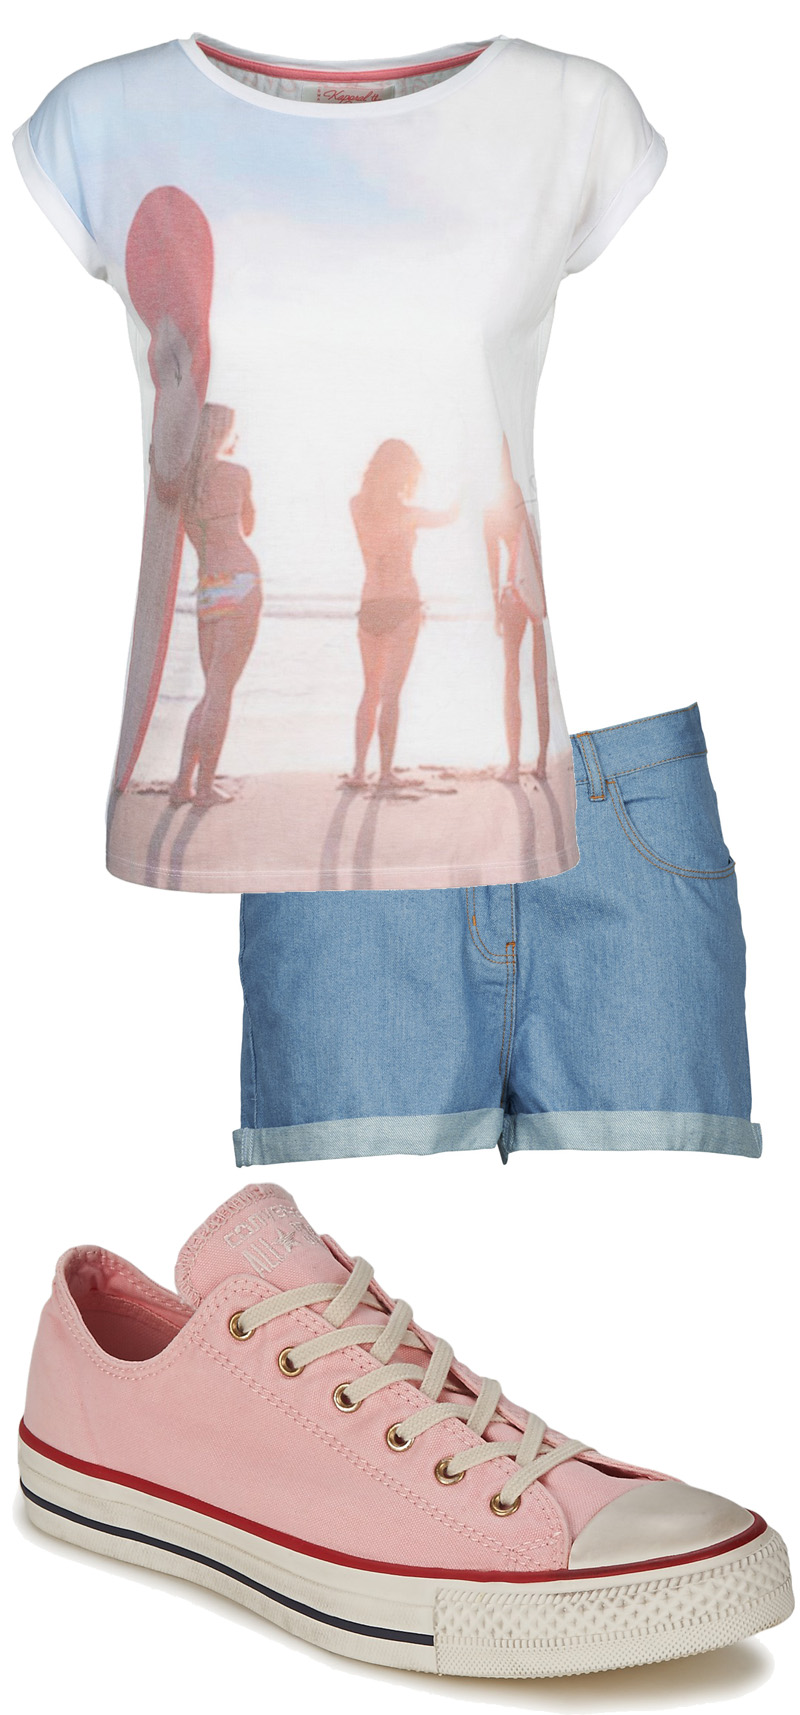 Spartoo Outfit - Pink Converse